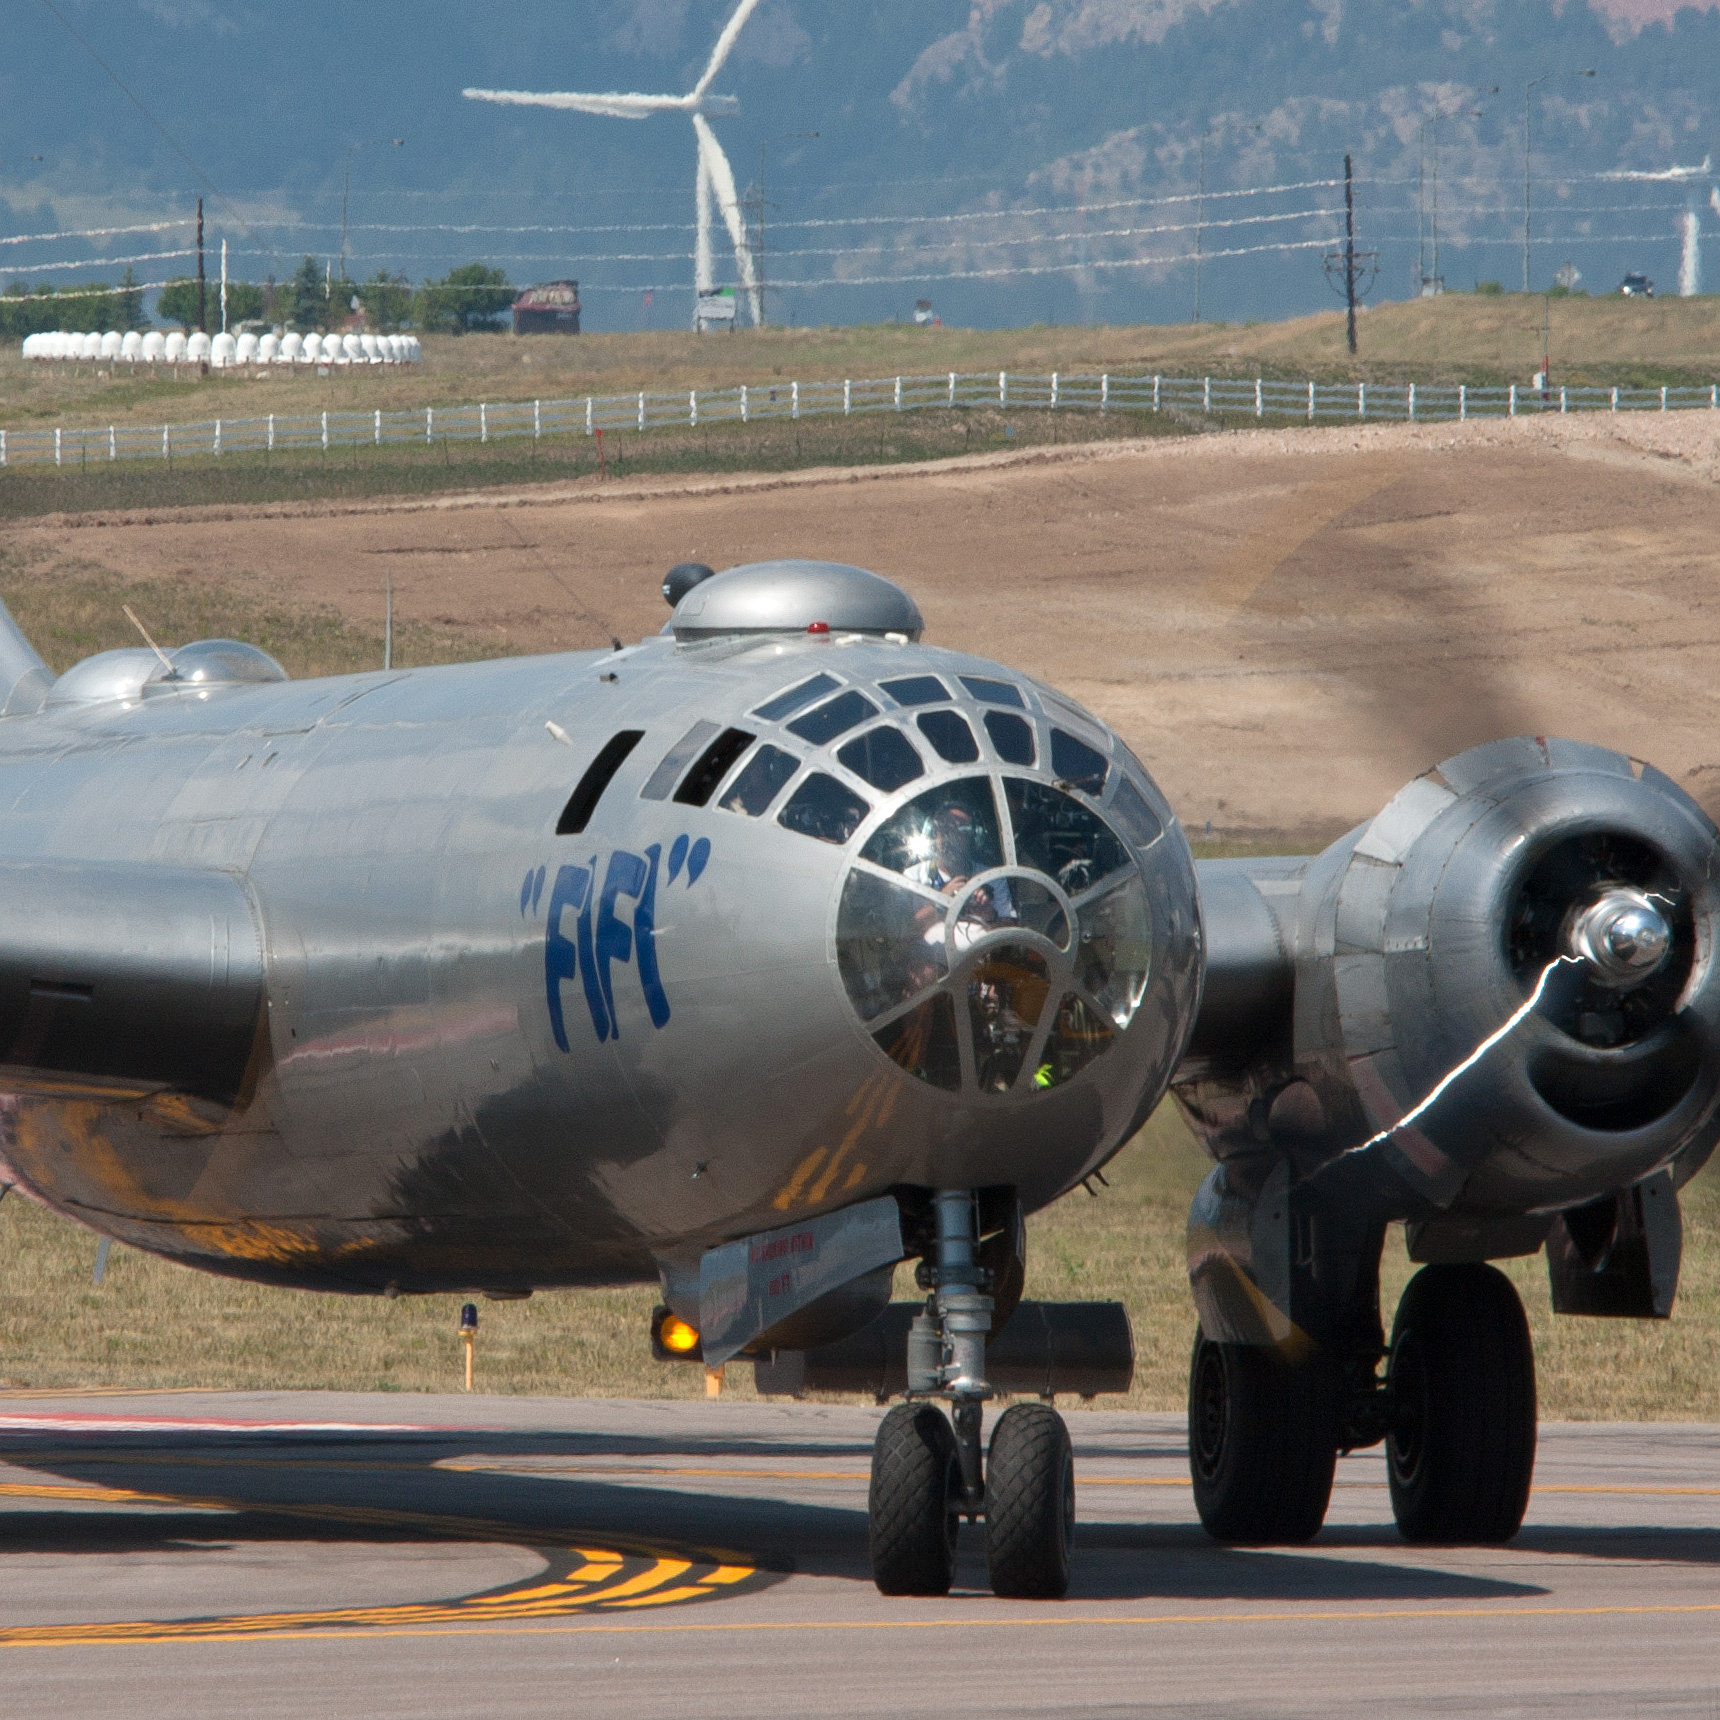 Airshow Review – Rocky Mountain Airshow 2013 at Rocky Mountain Metro Airport, Colorado